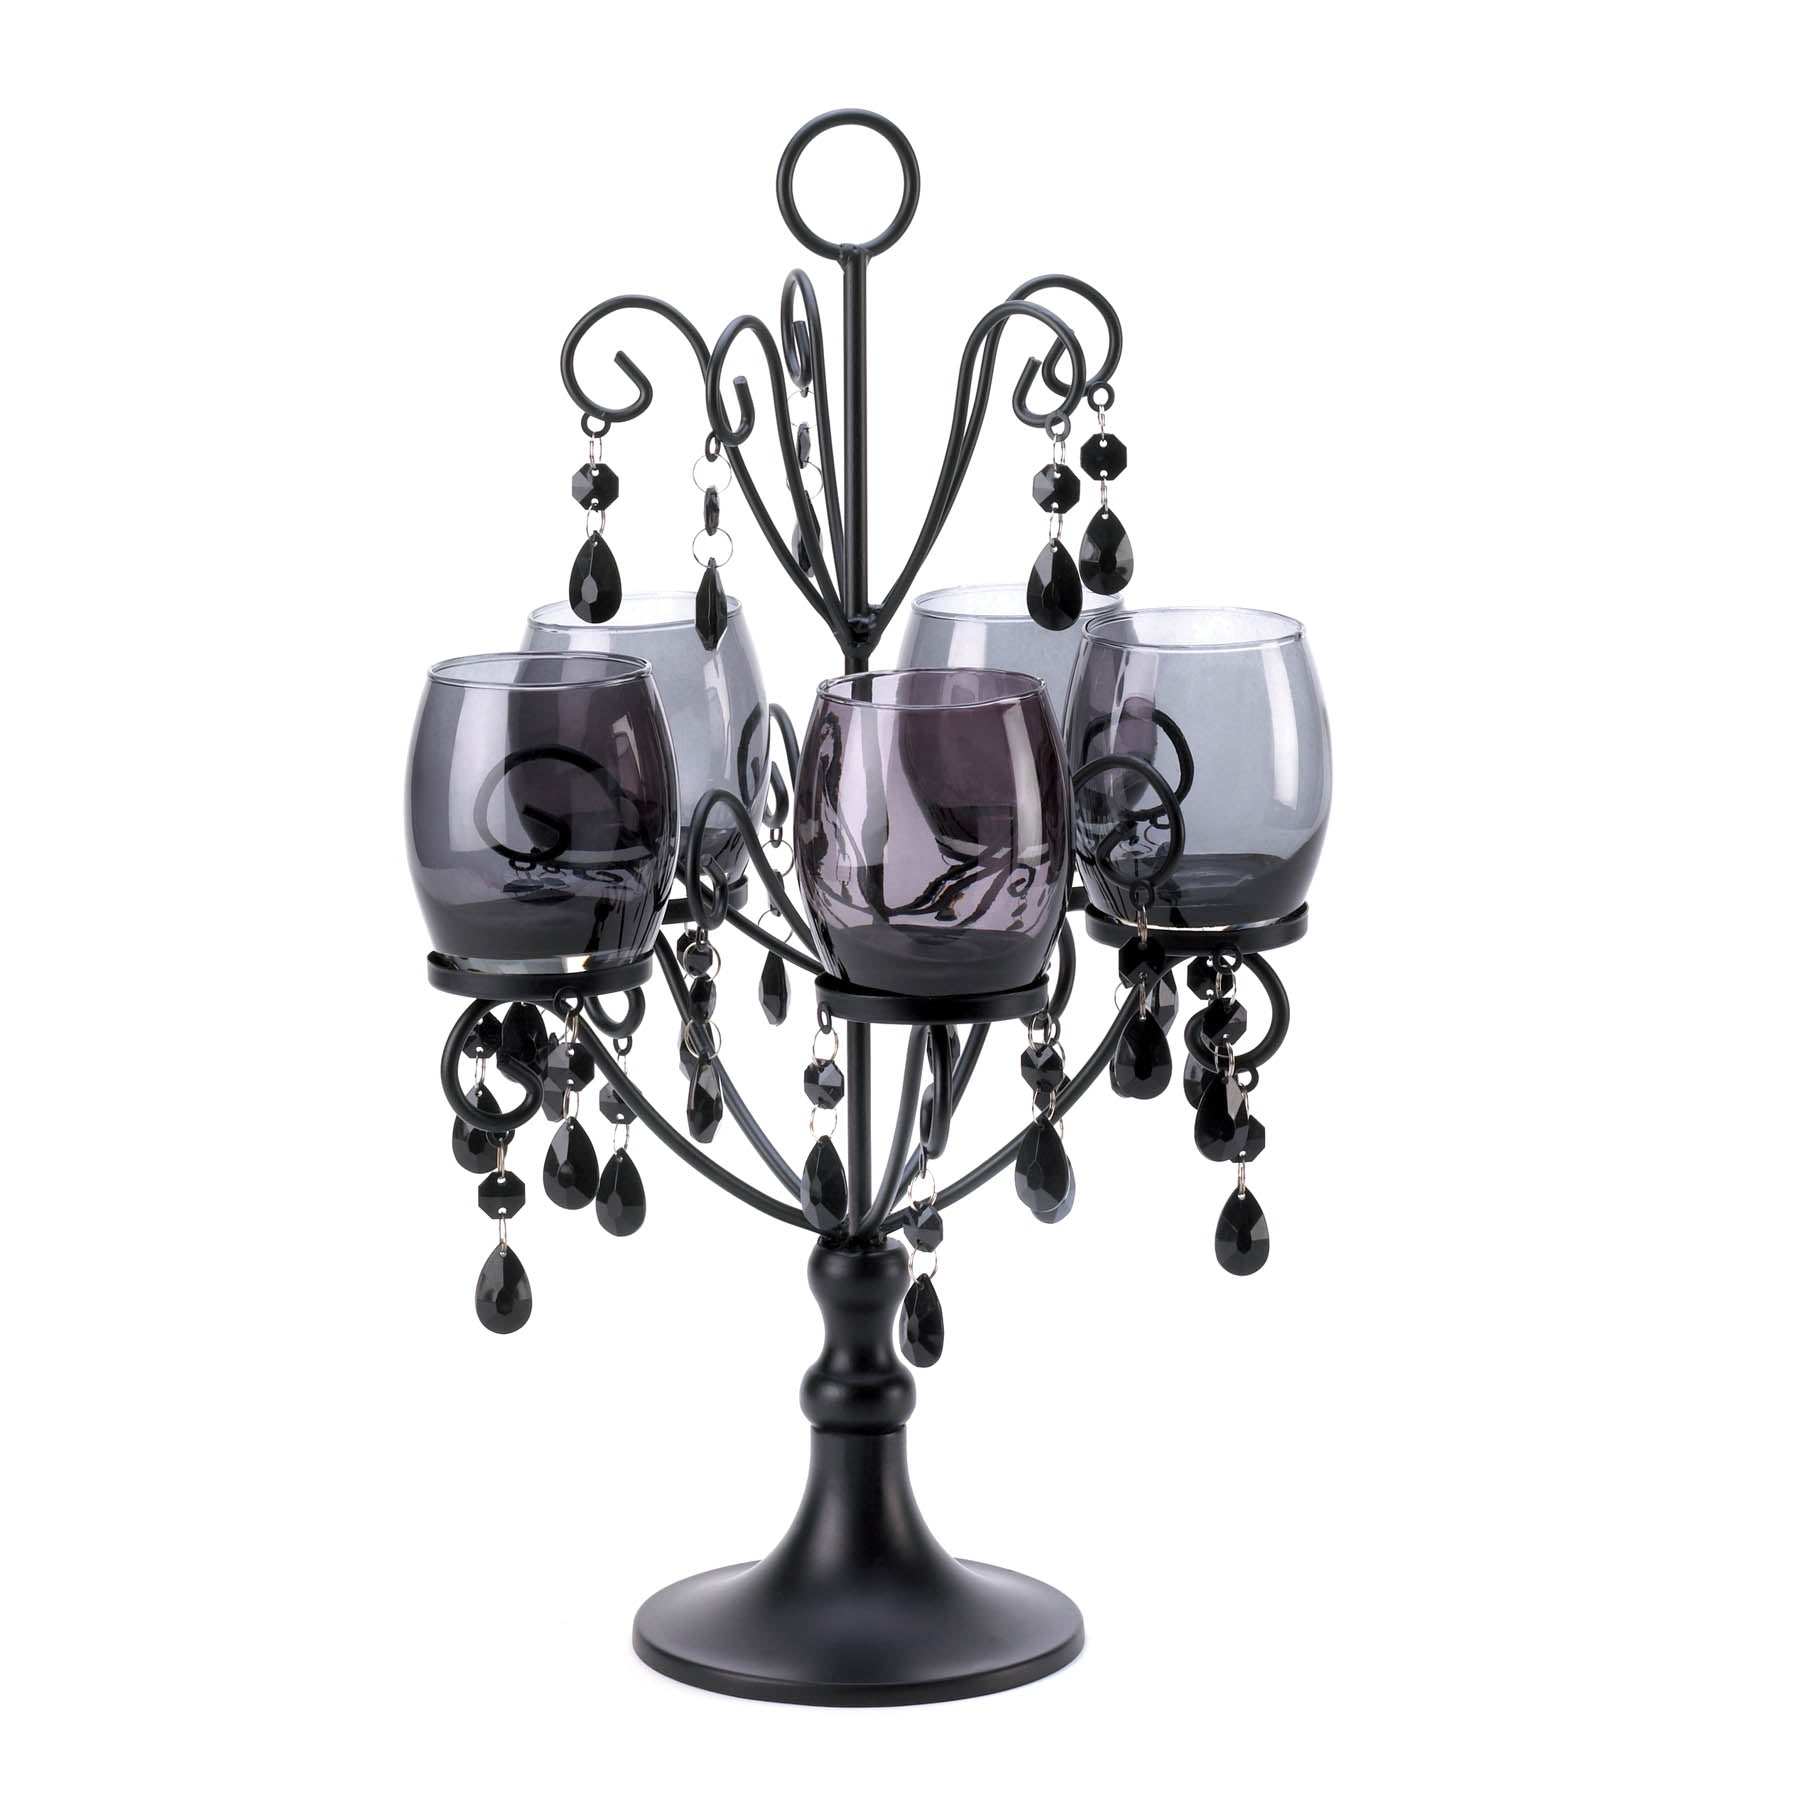 Gallery of Light Midnight Elegance Candelabra - 10015105